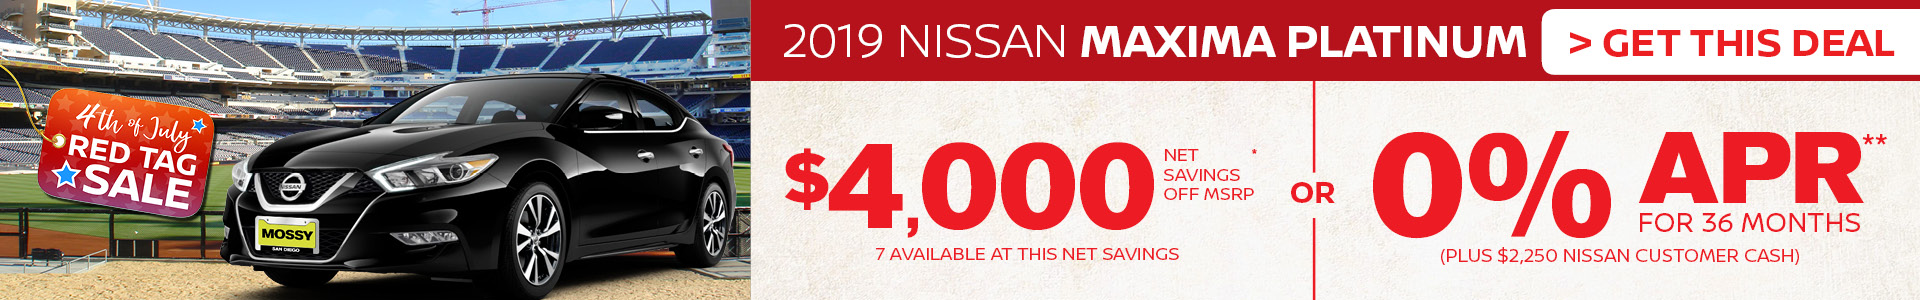 Mossy Nissan - Nissan Maxima 4K Off MSRP